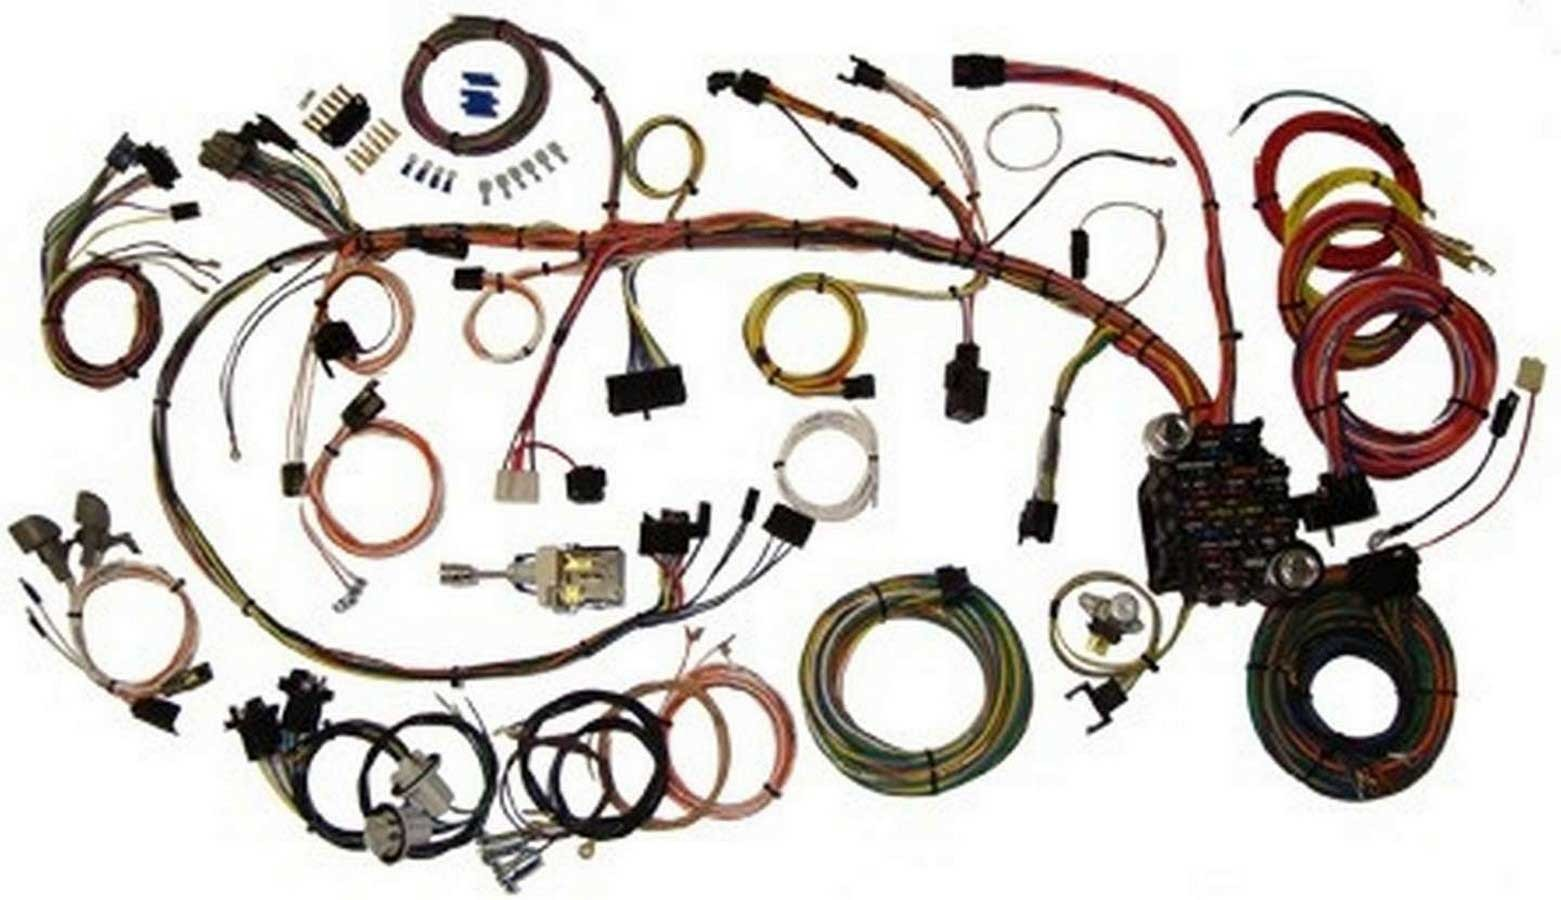 American Autowire 510034 Car Wiring Harness, Classic Update, Complete, Camaro 1970-73, Kit